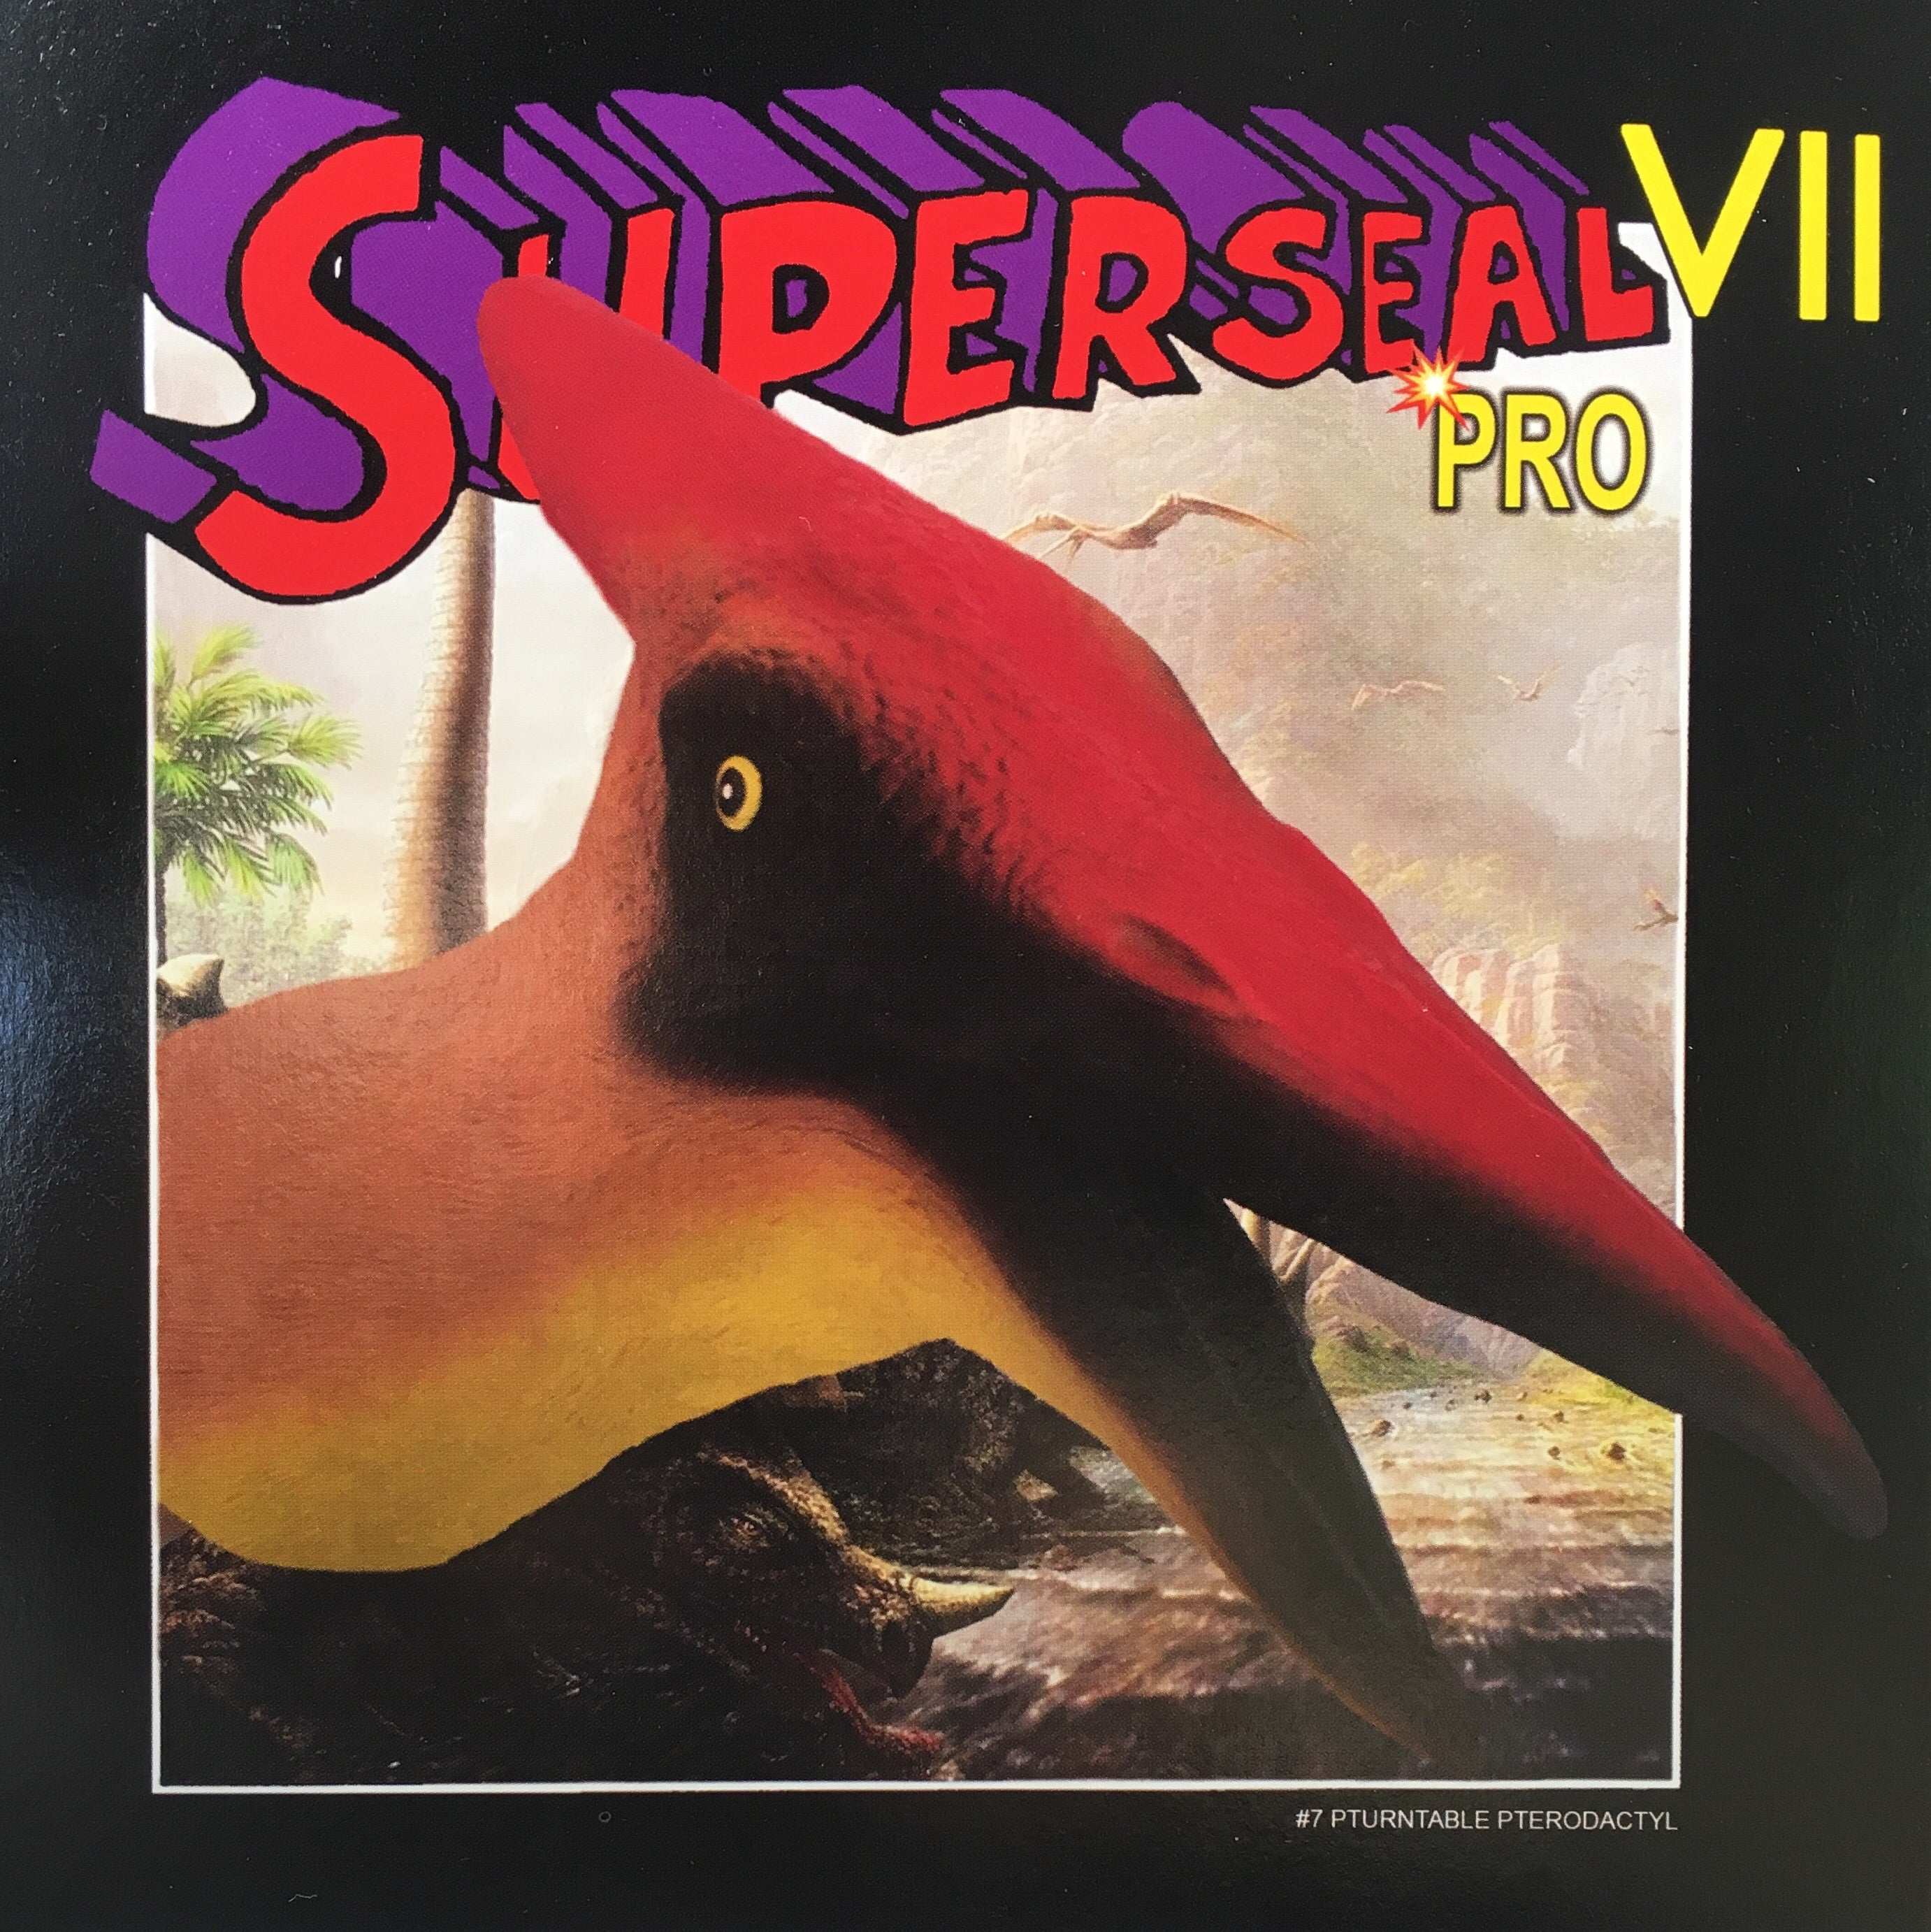 "Superseal VII Pro #7 (of 7 parts) Pturntable Pterodactyl 7"" (giant robo vii left wing)"